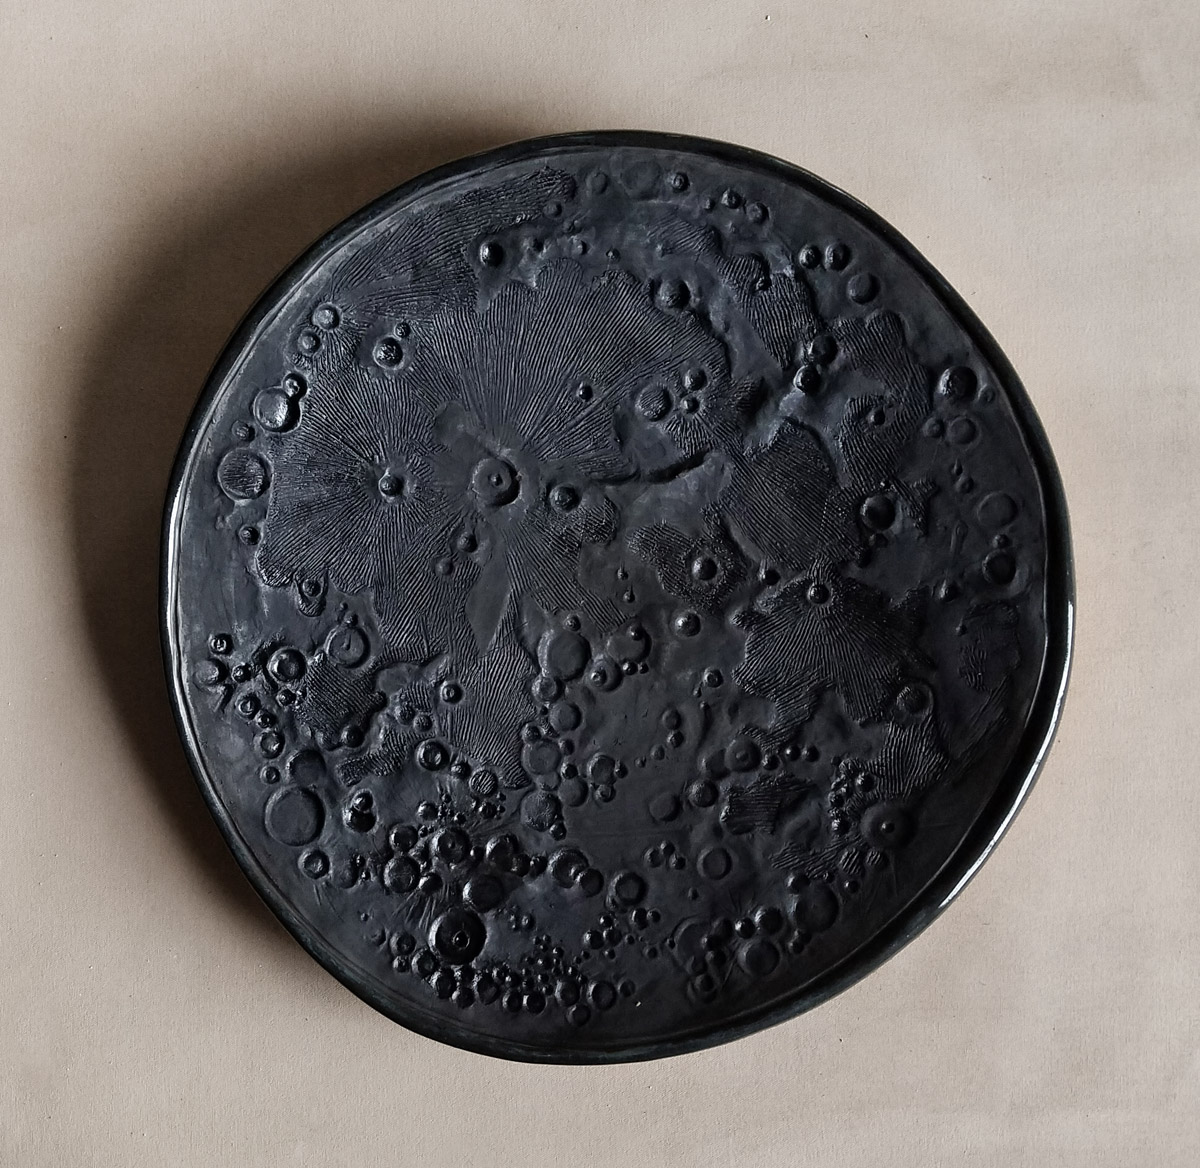 Dark Moon ceramics by Emily Miller